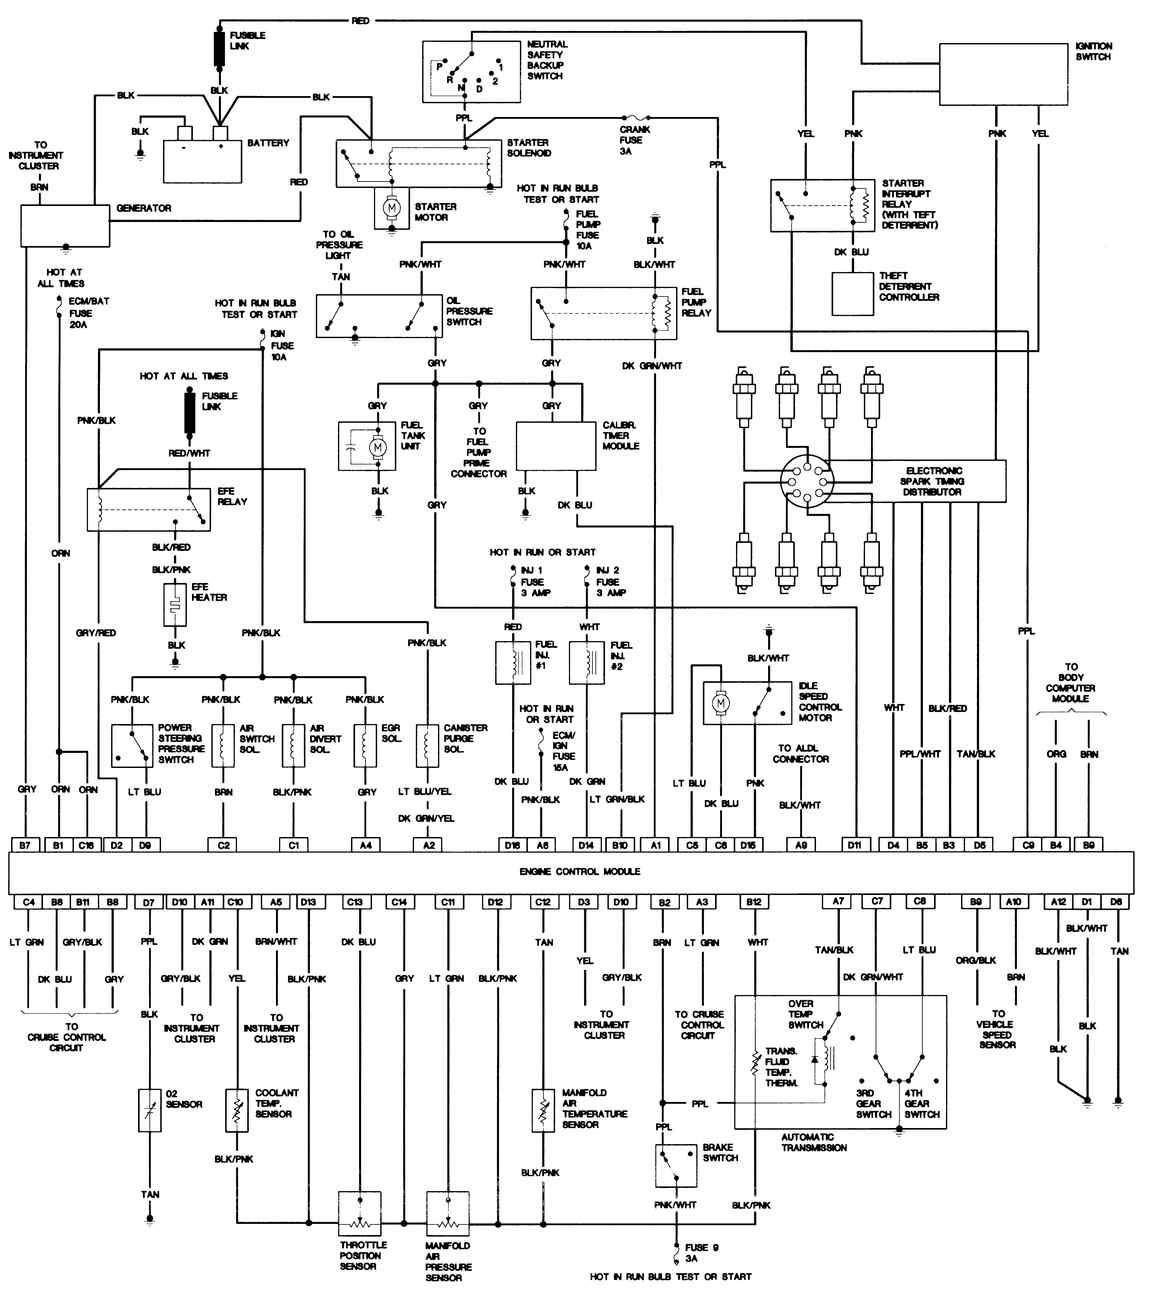 Diagram 2000 Daewoo Nubira Radio Wiring Diagram Full Version Hd Quality Wiring Diagram Pvdiagramsromeob Famigliearoma It